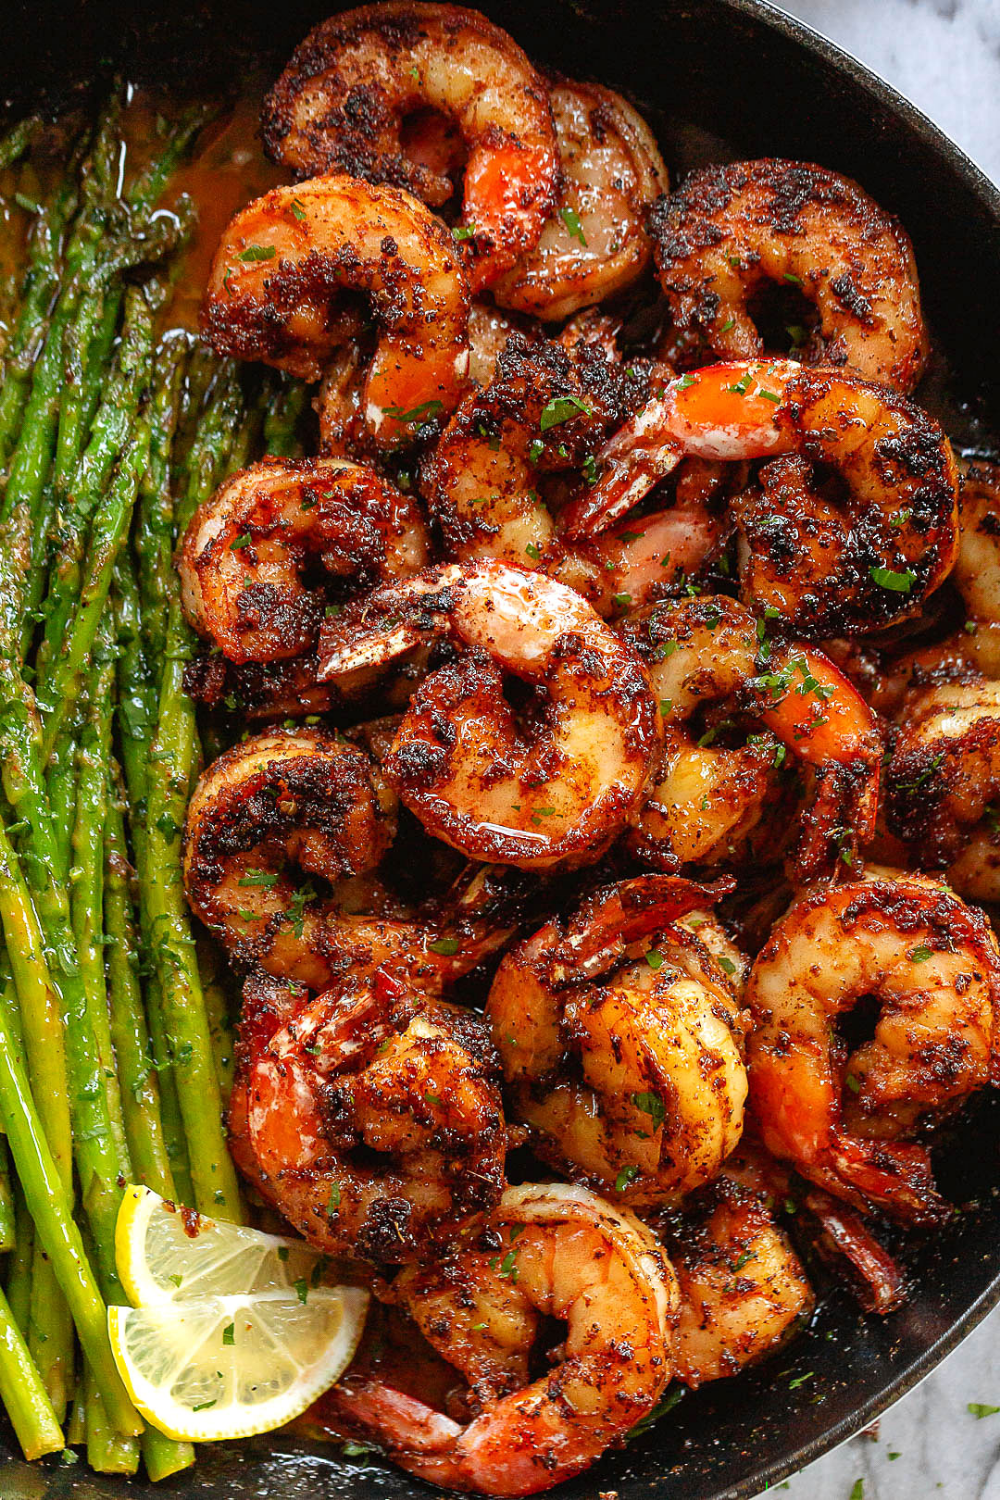 Blackened Shrimp and Asparagus Skillet (20 Minutes